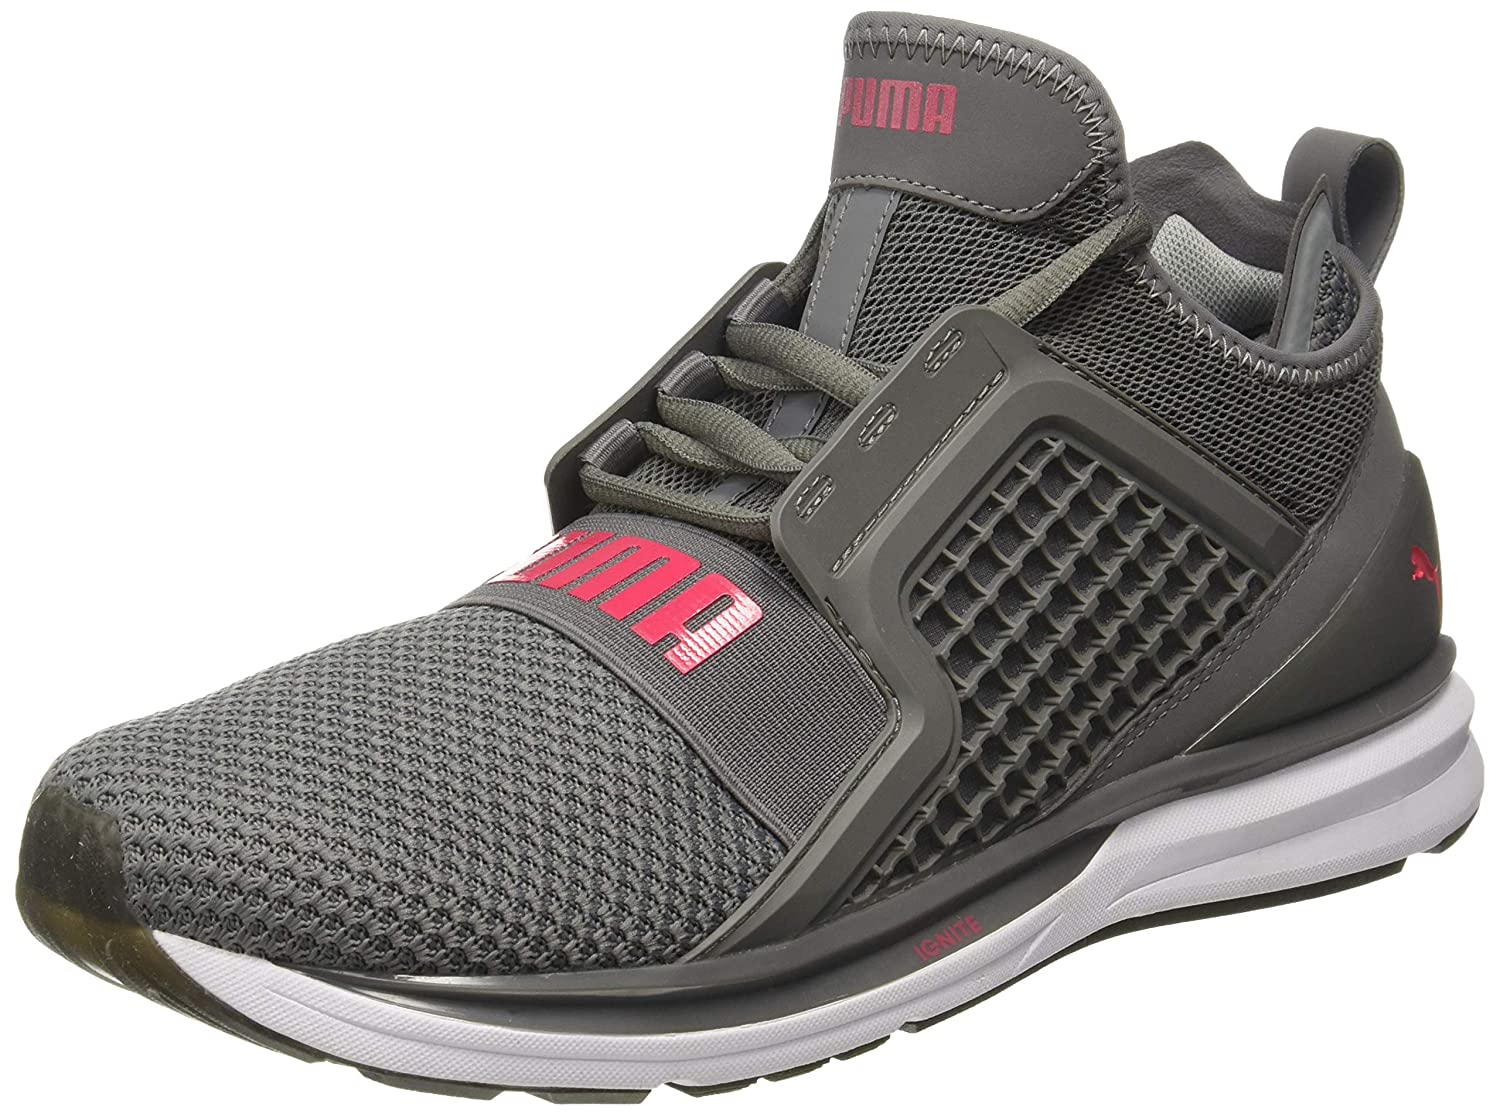 0375c8275f3 Puma Men s Ignite Limitless WeaveMen Running Shoes  Buy Online at Low  Prices in India - Amazon.in